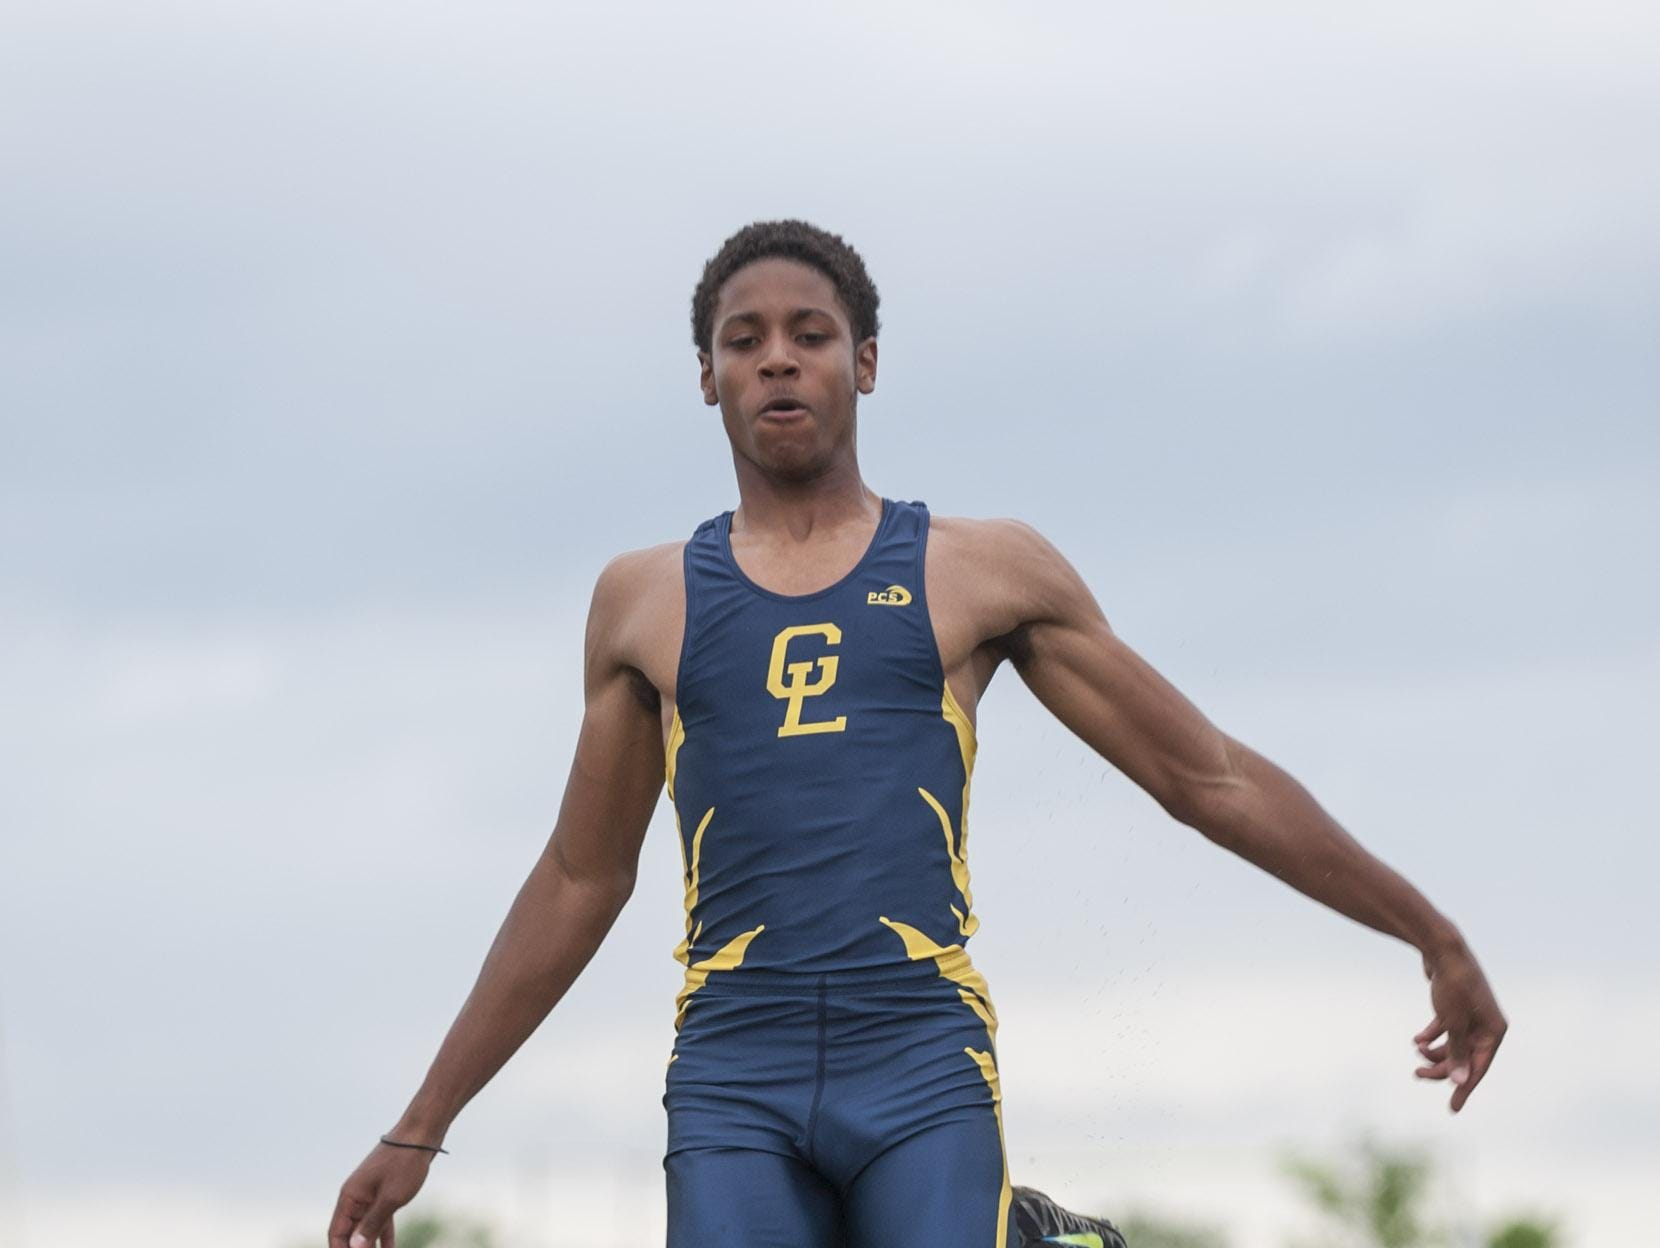 Grand Ledge's Austin Edwards repeated as the Division 1 state champion in the long jump during a strong junior season.